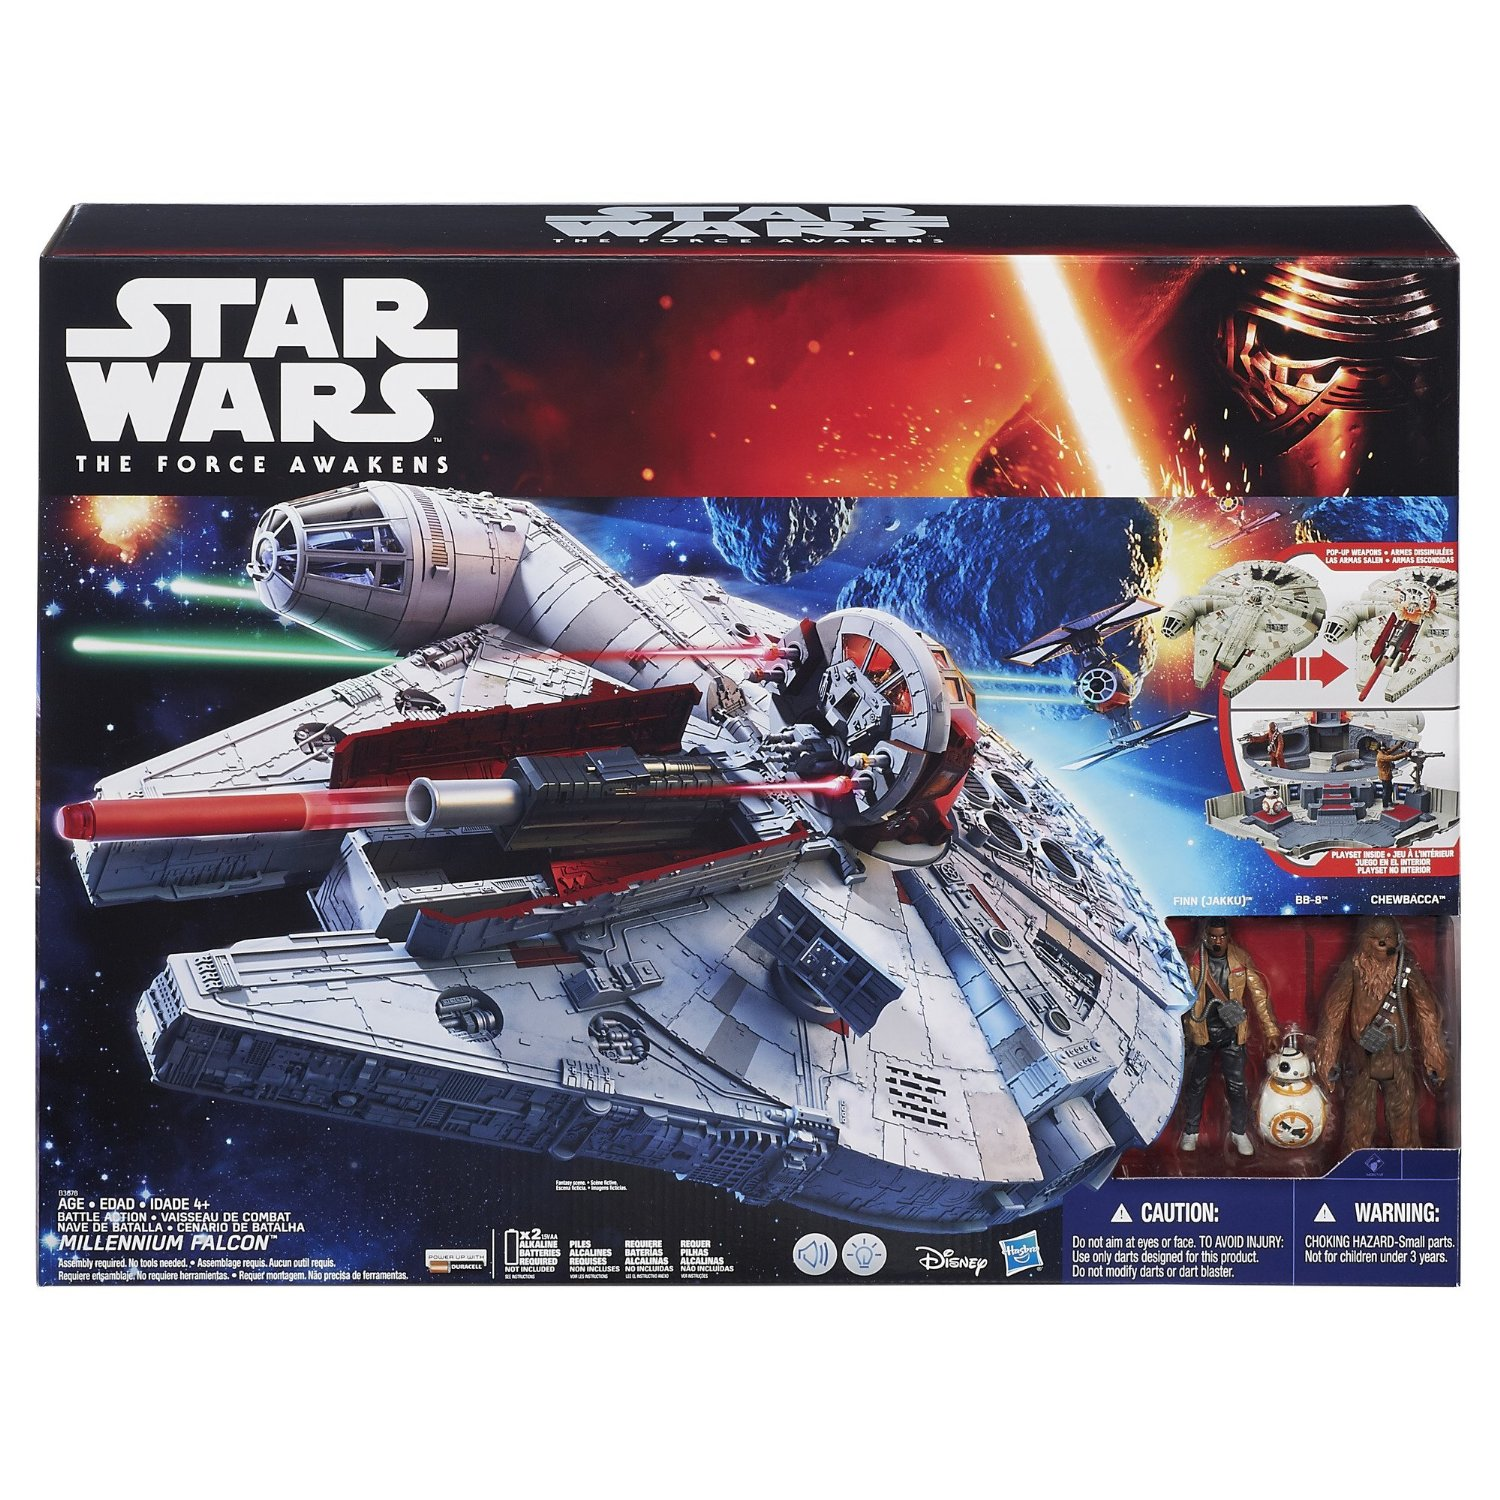 3 Star Wars gift ideas that will make you the greatest gift giver, ever.